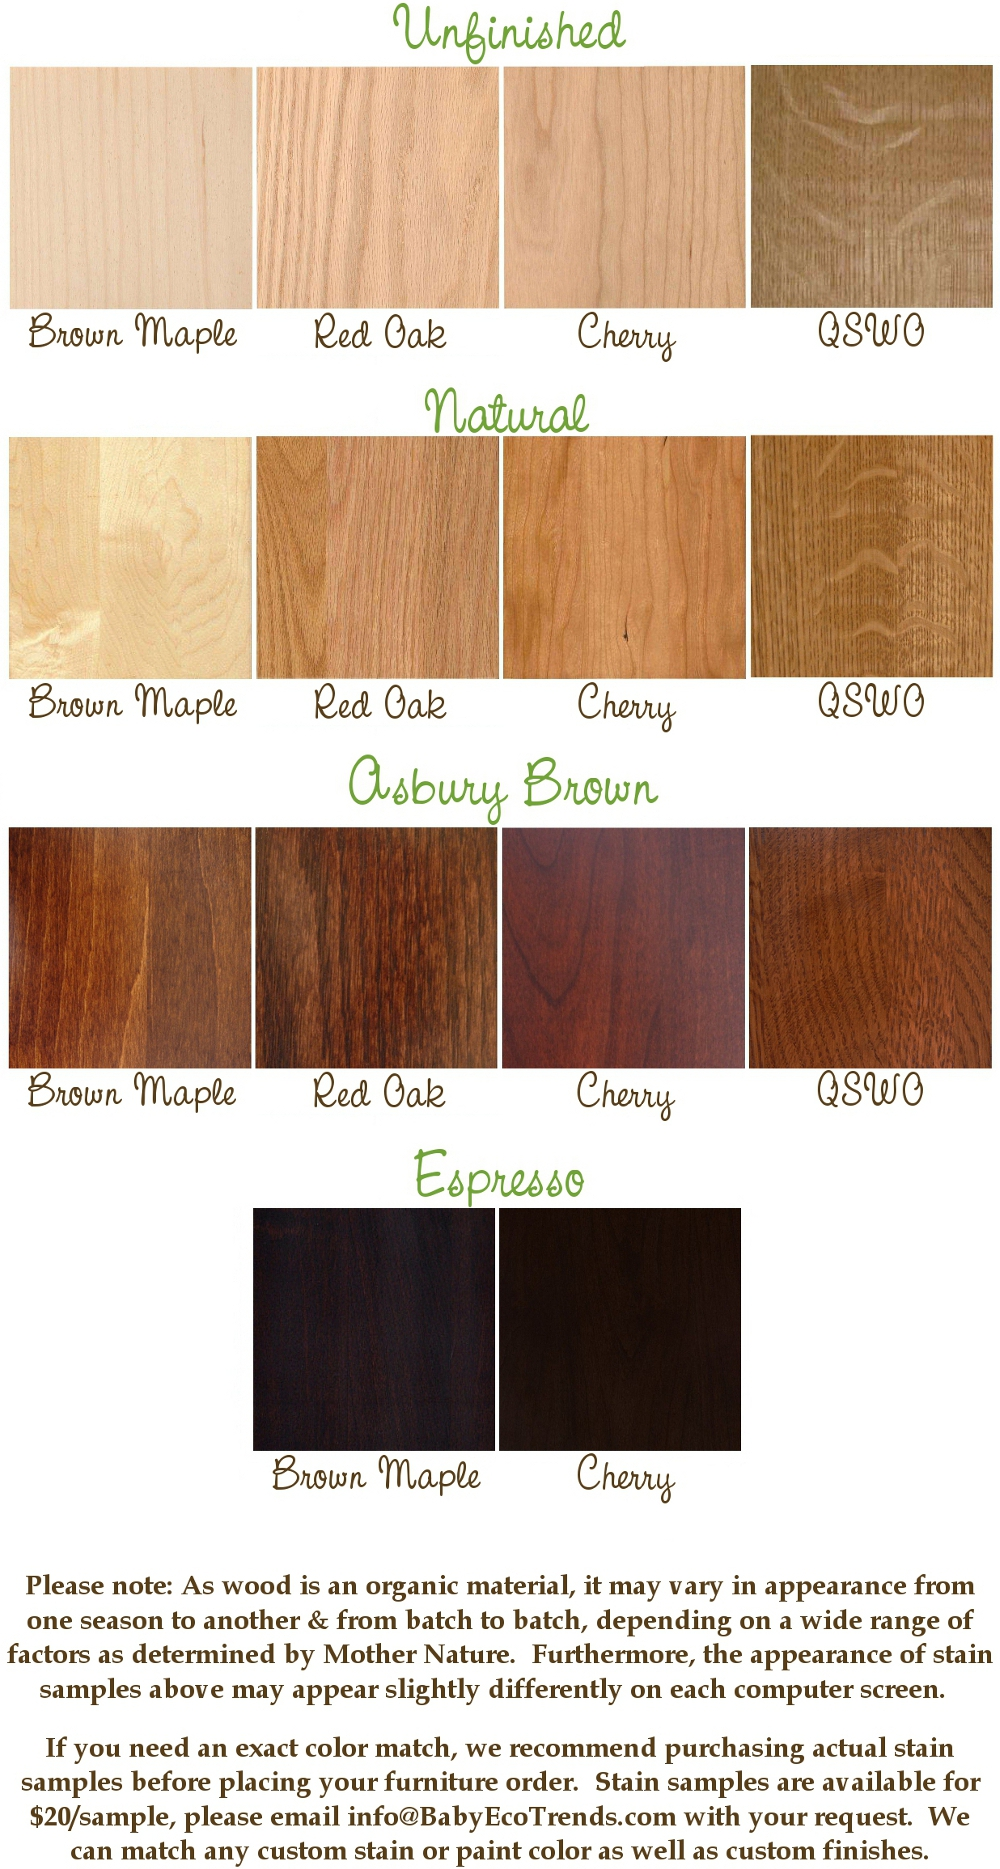 https://www.babyecotrends.com/images/image/BabyEcoTrends_com_stain_swatches_1000x1869_1.jpg